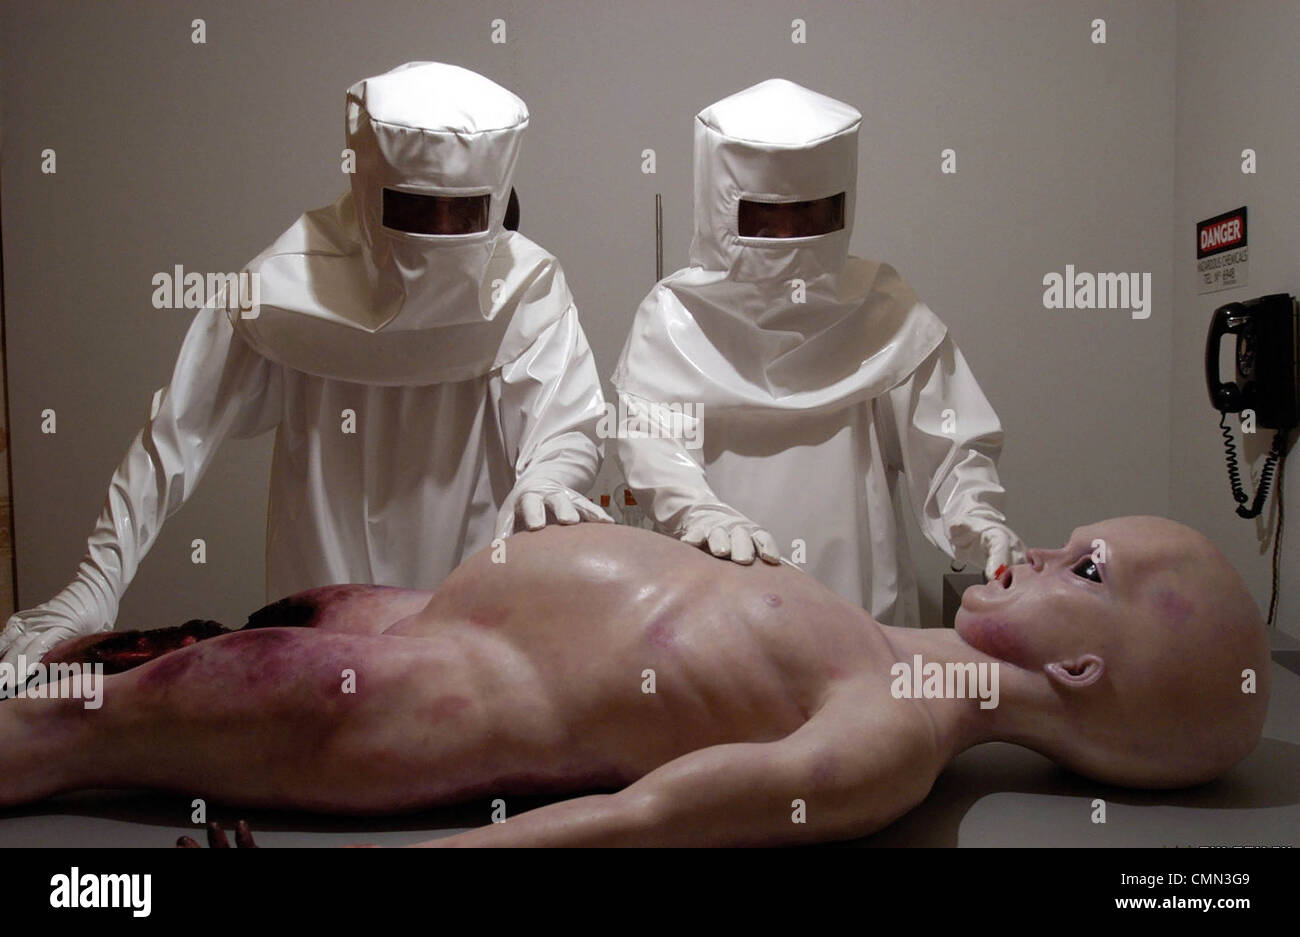 ALIEN AUTOPSY (2006) JONNY CAMPBELL (DIR) 002 MOVIESTORE COLLECTION LTD - Stock Image